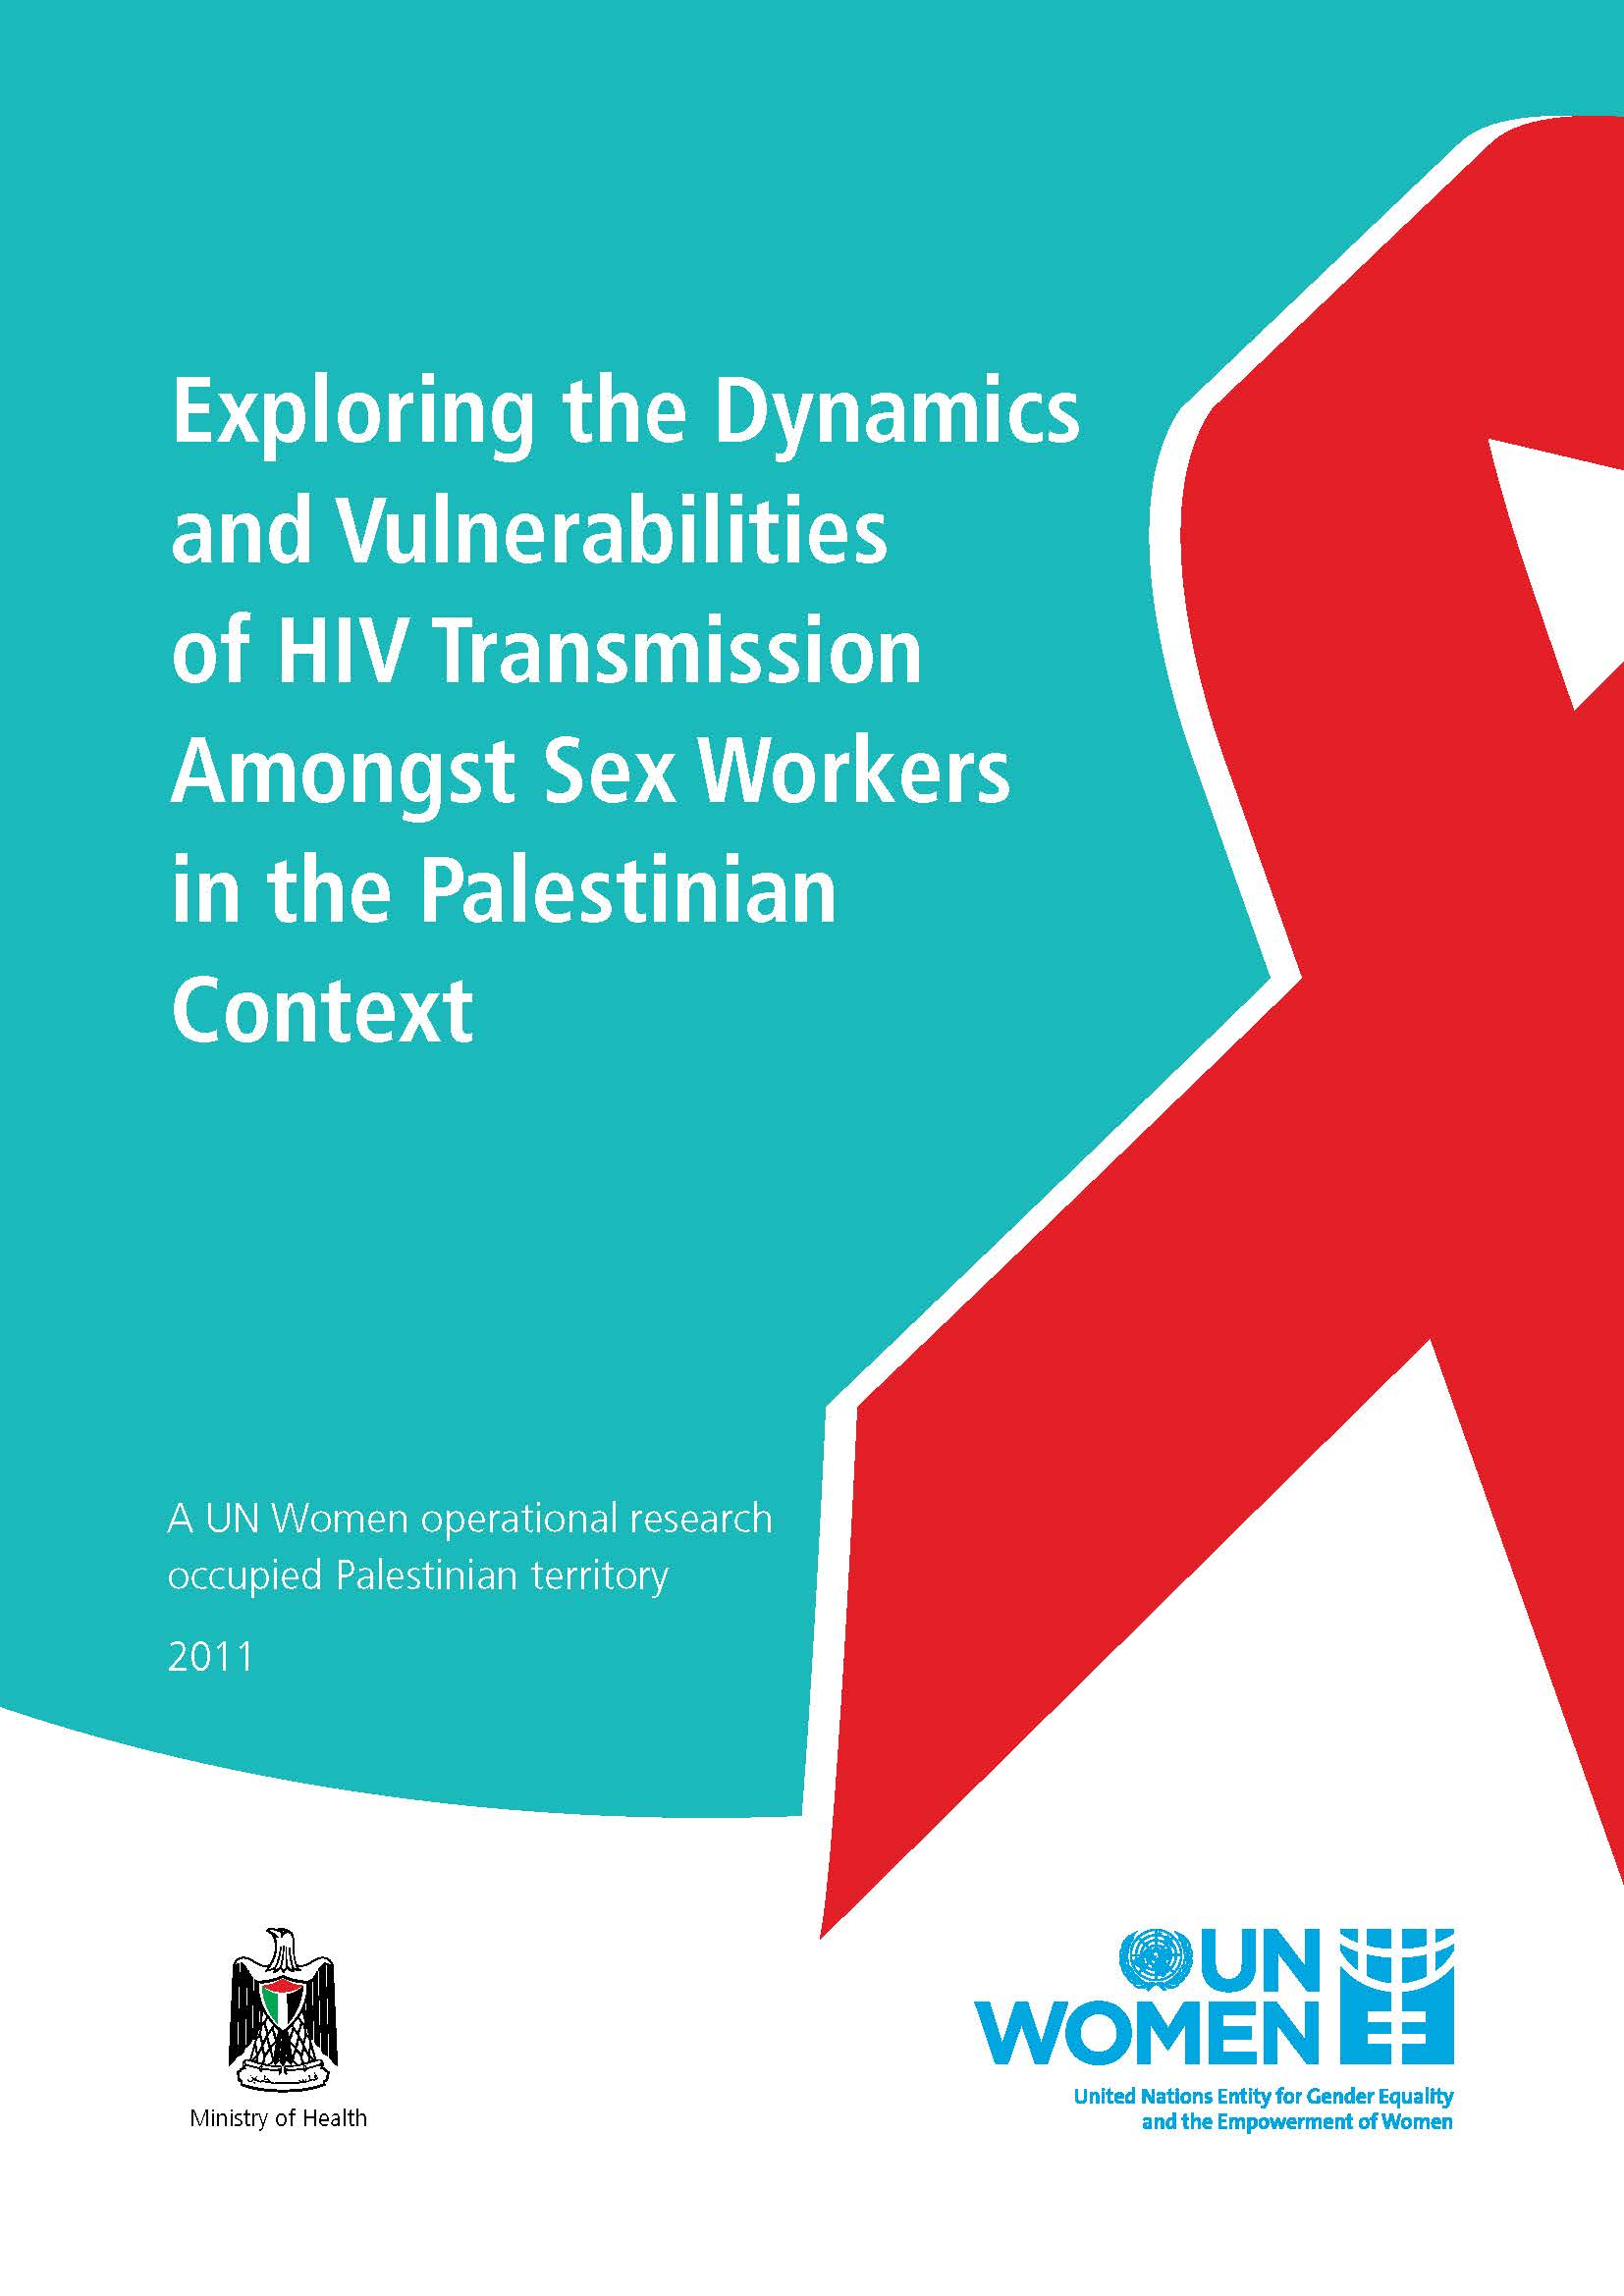 Exploring the Dynamics and Vulnerabilities of HIV Transmission Amongst Sex Workers in the Palestinian Context